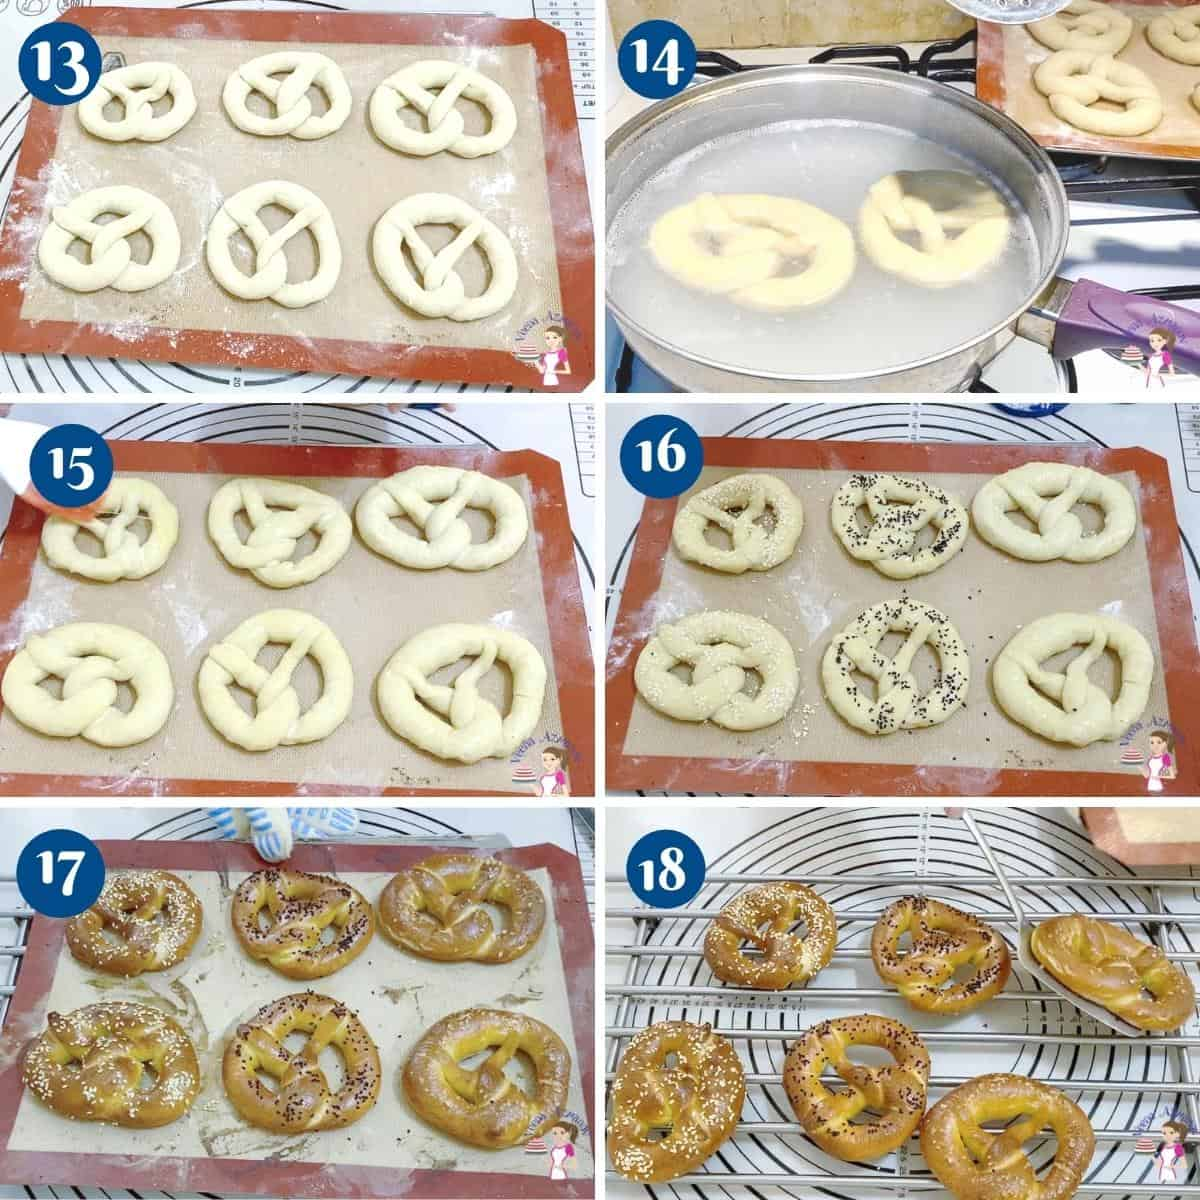 Progress pictures collage for baking pretzels.